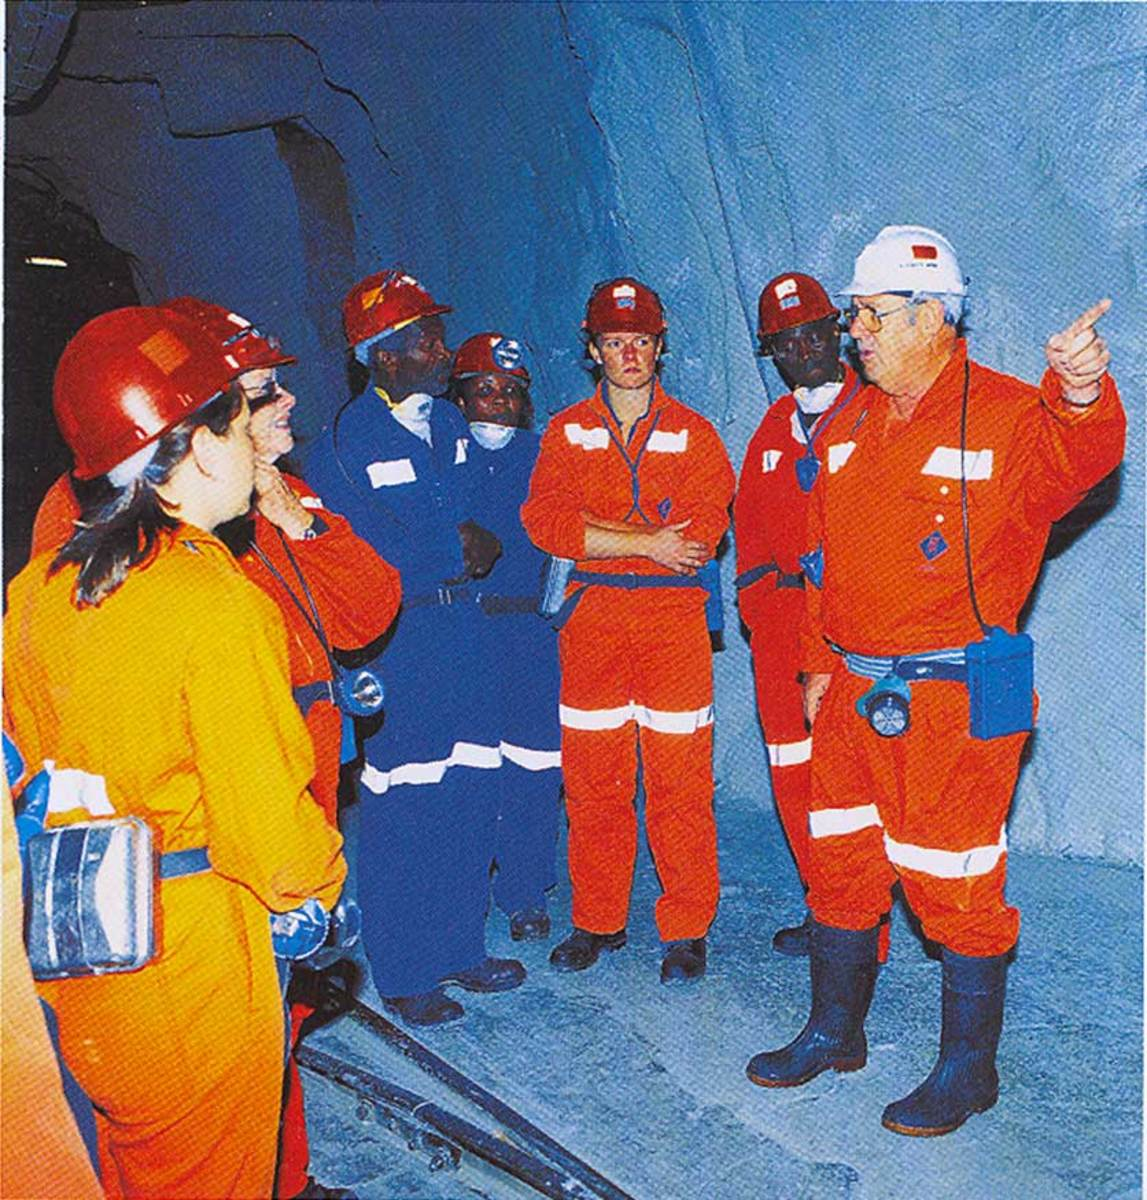 A tour conducted by a mine staff member